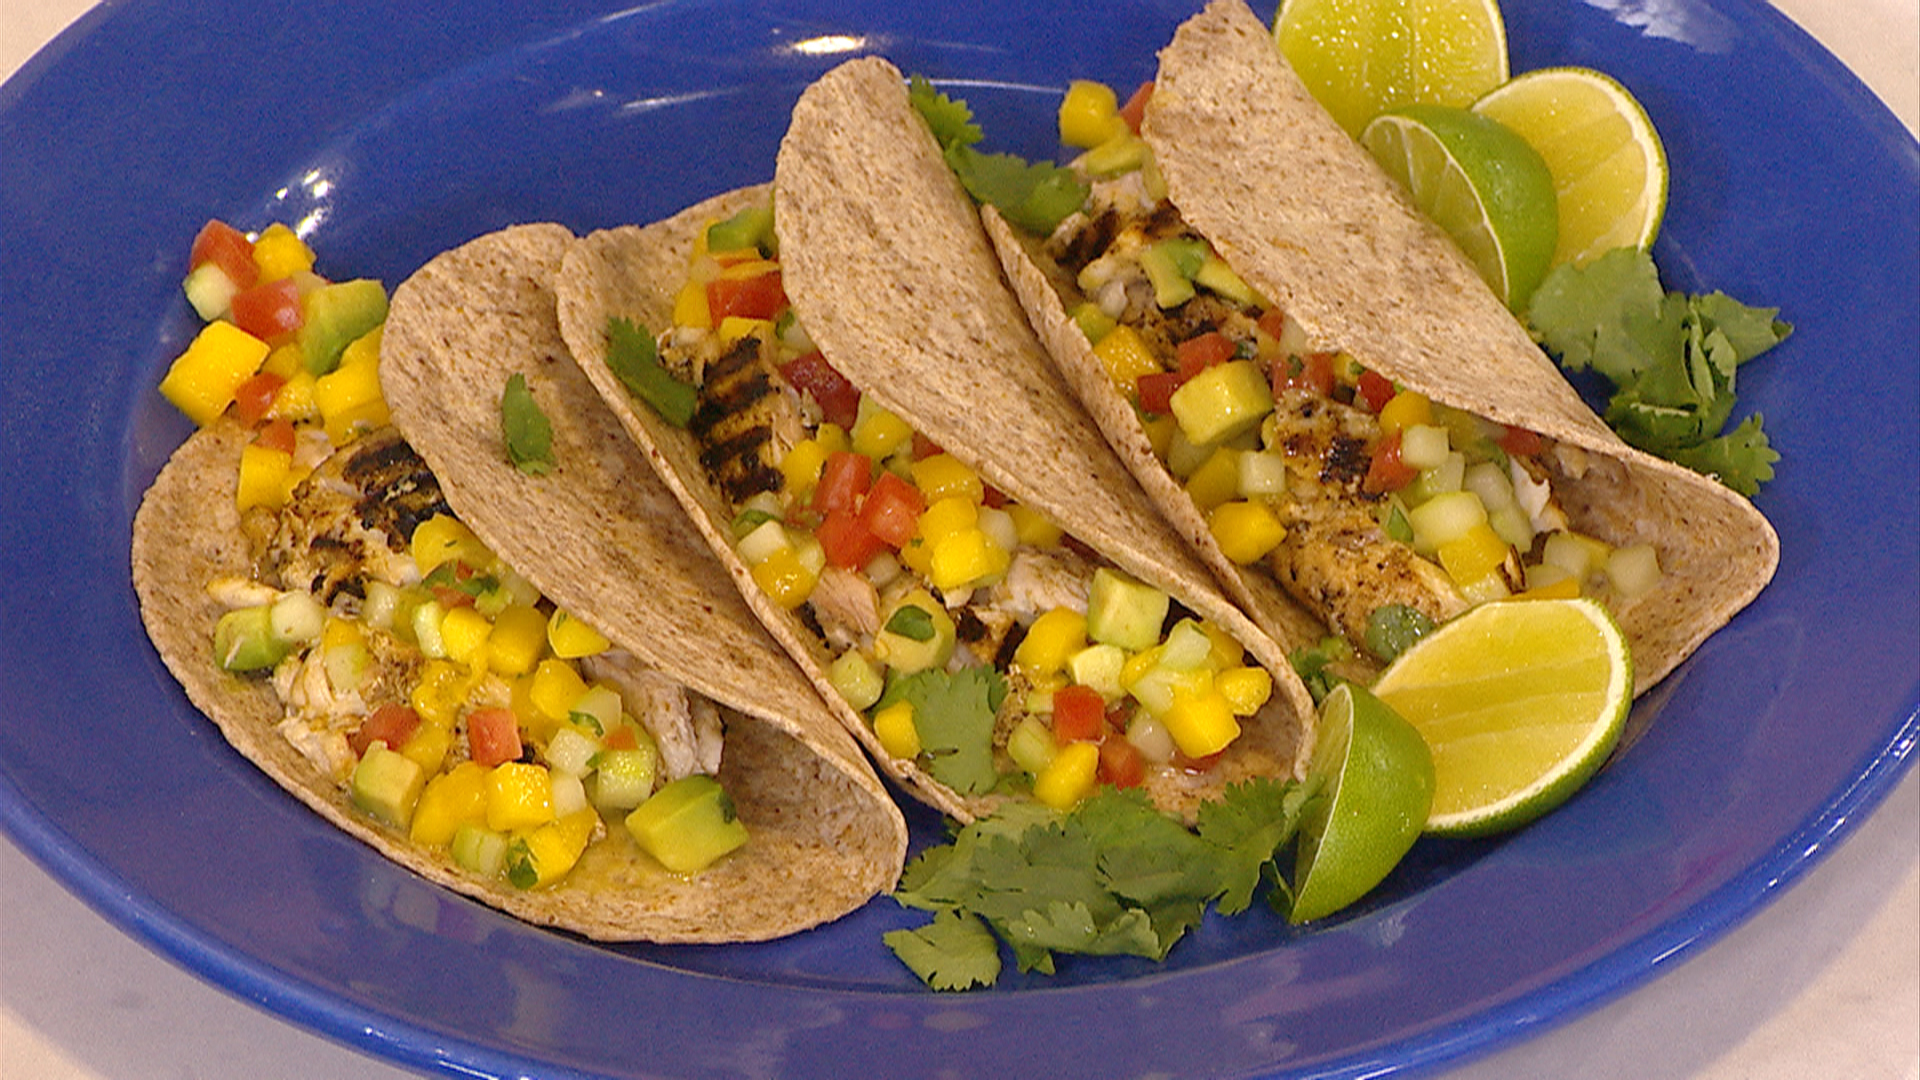 Fish tacos with mango salsa for Mango salsa recipe for fish